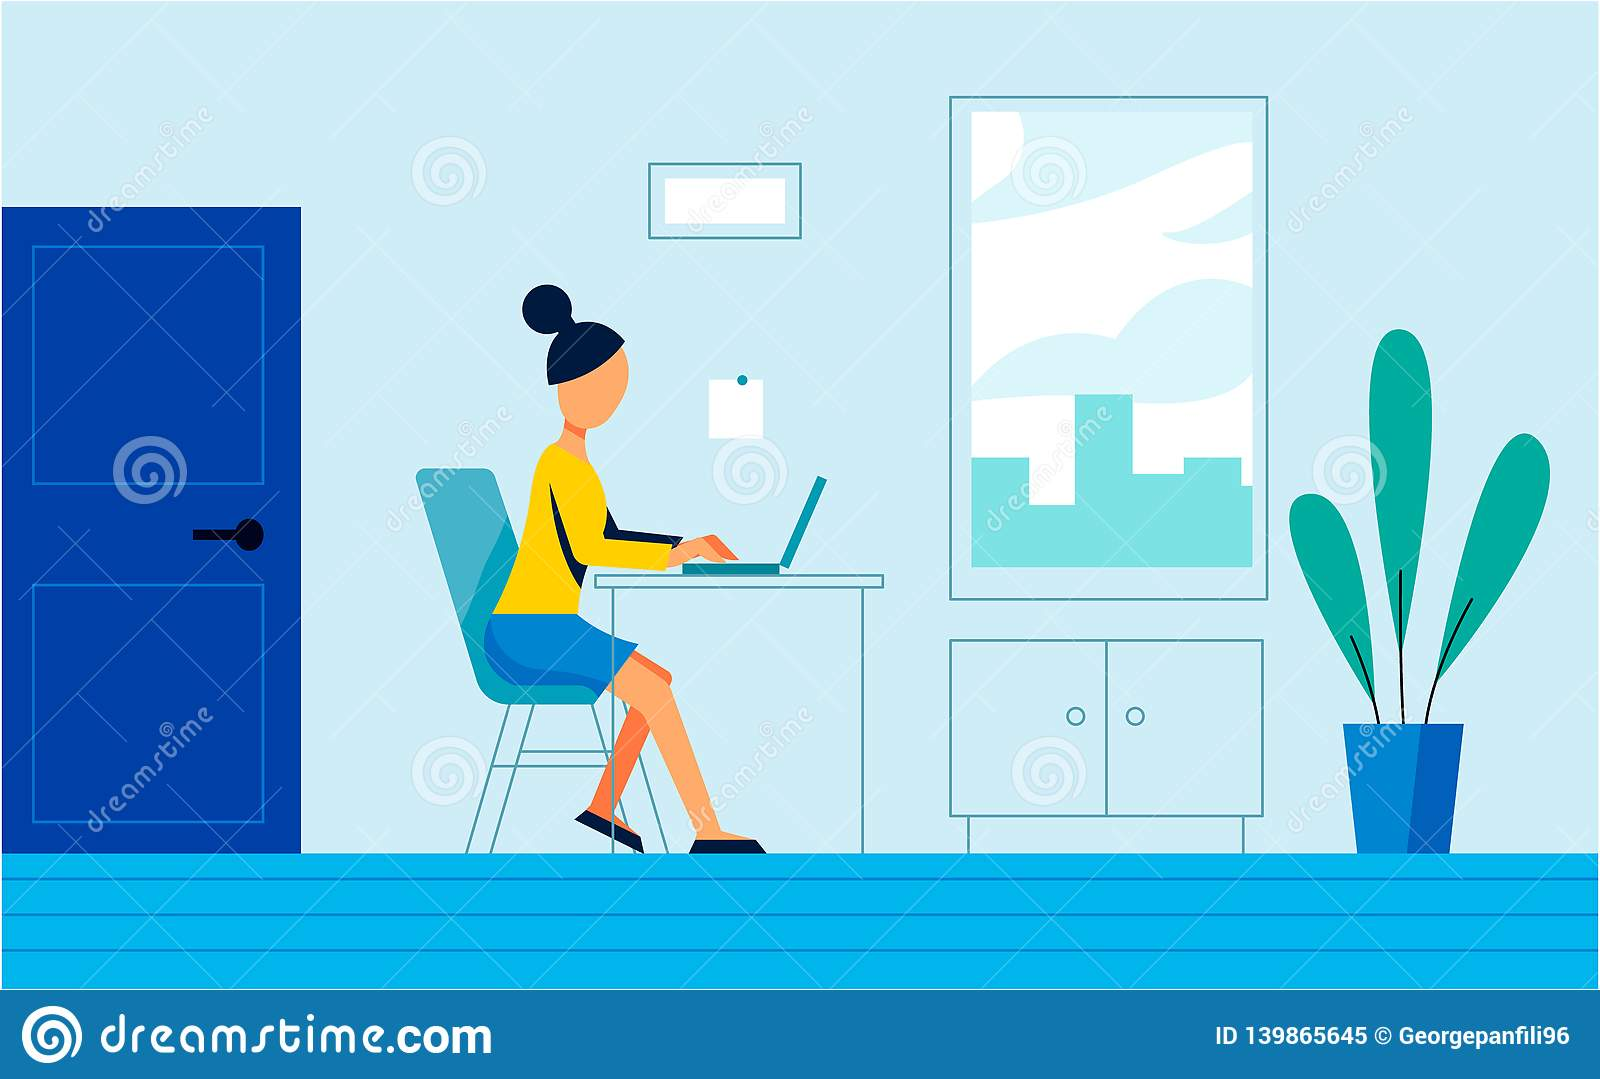 The woman work in the office. Art illustration